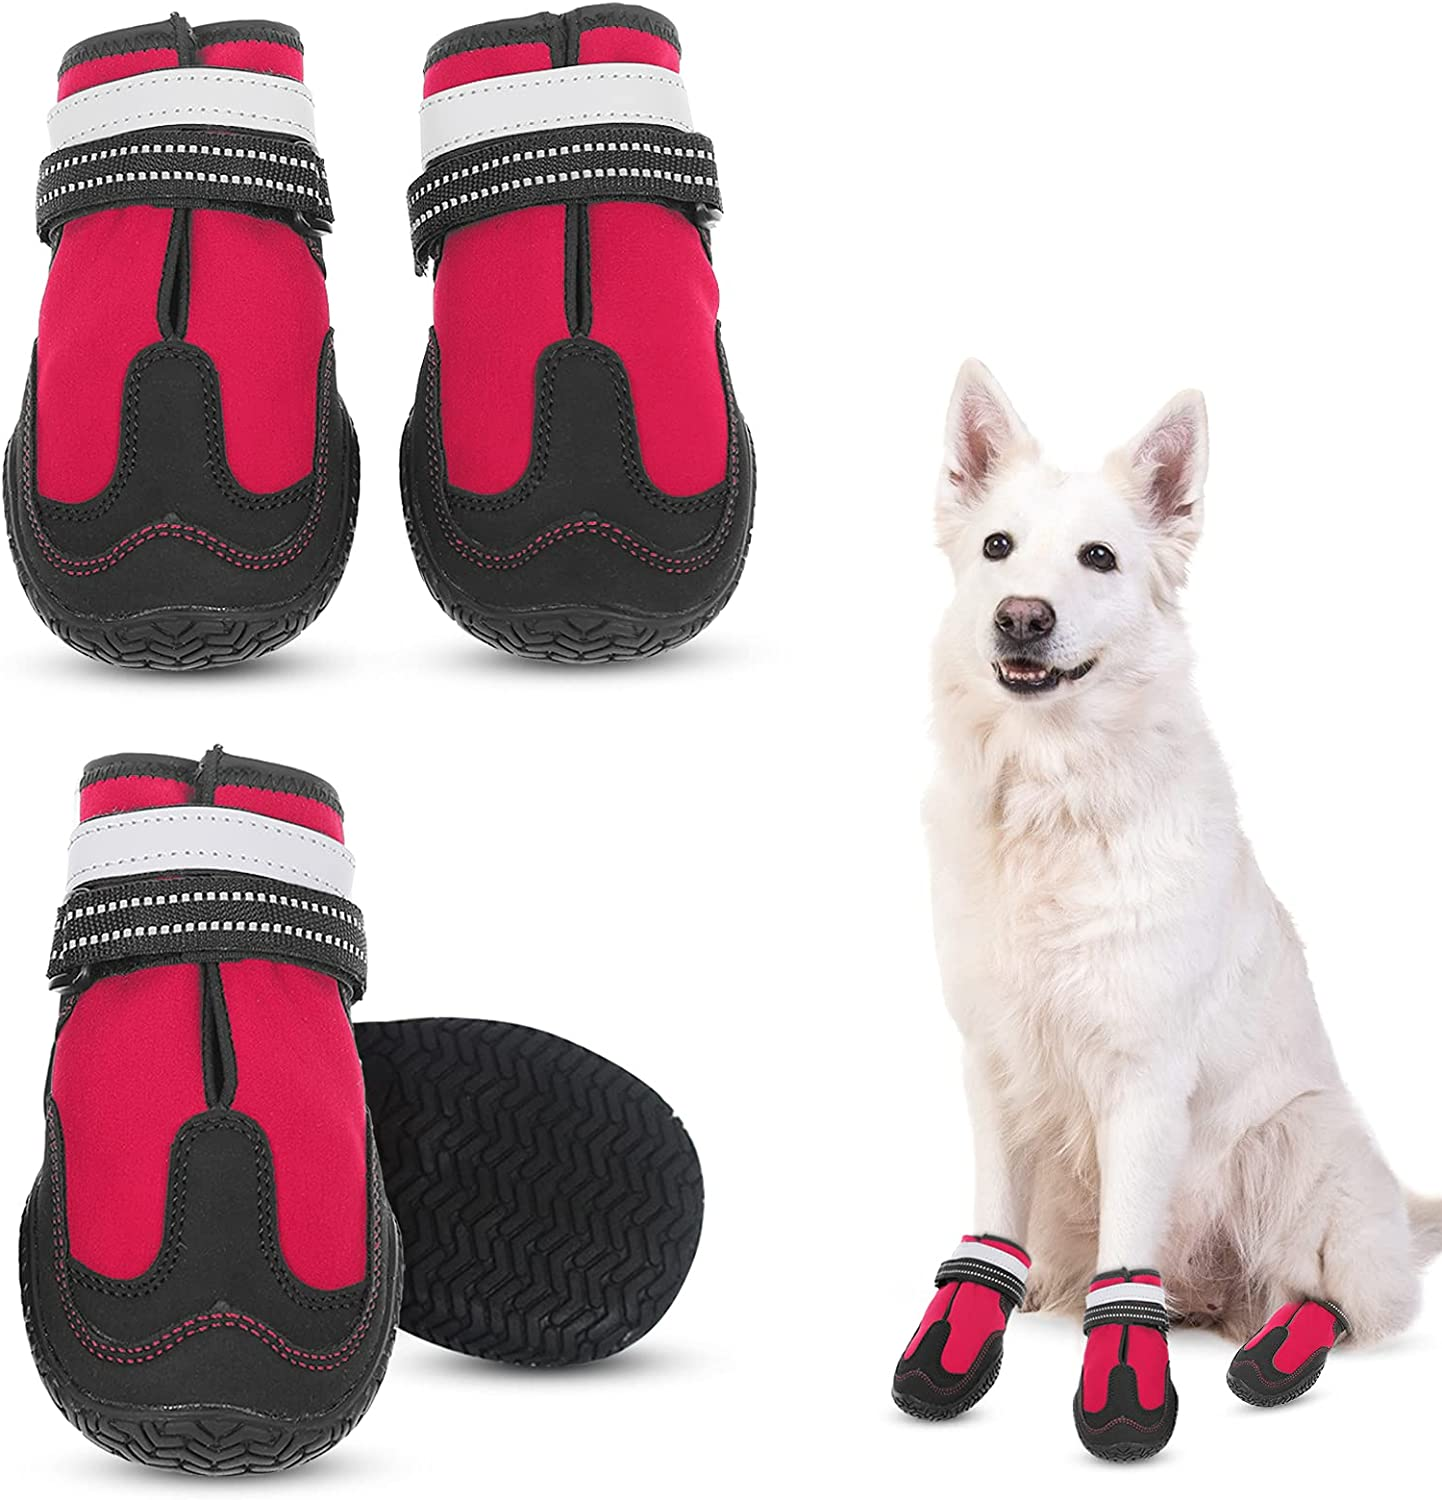 MORVIGIVE Seattle Mall Winter Dog Shoes for Reflective Over item handling Medium Large Dogs